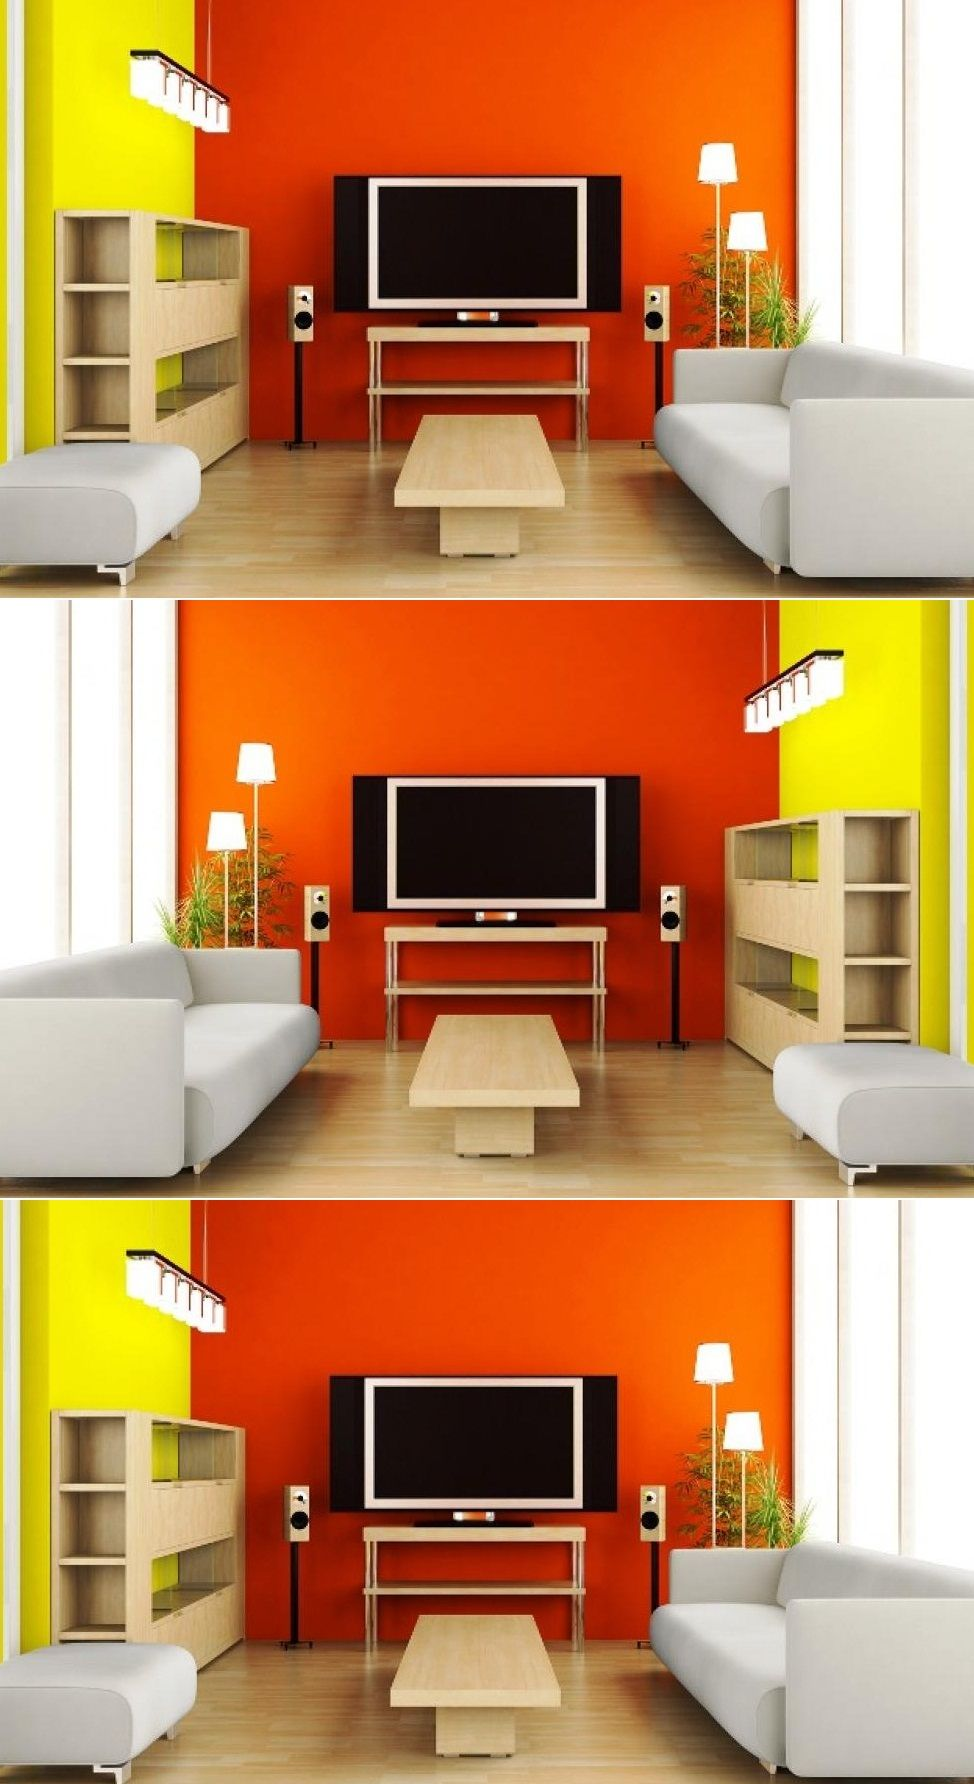 home color design home colour design interior house on interior house color ideas id=80407